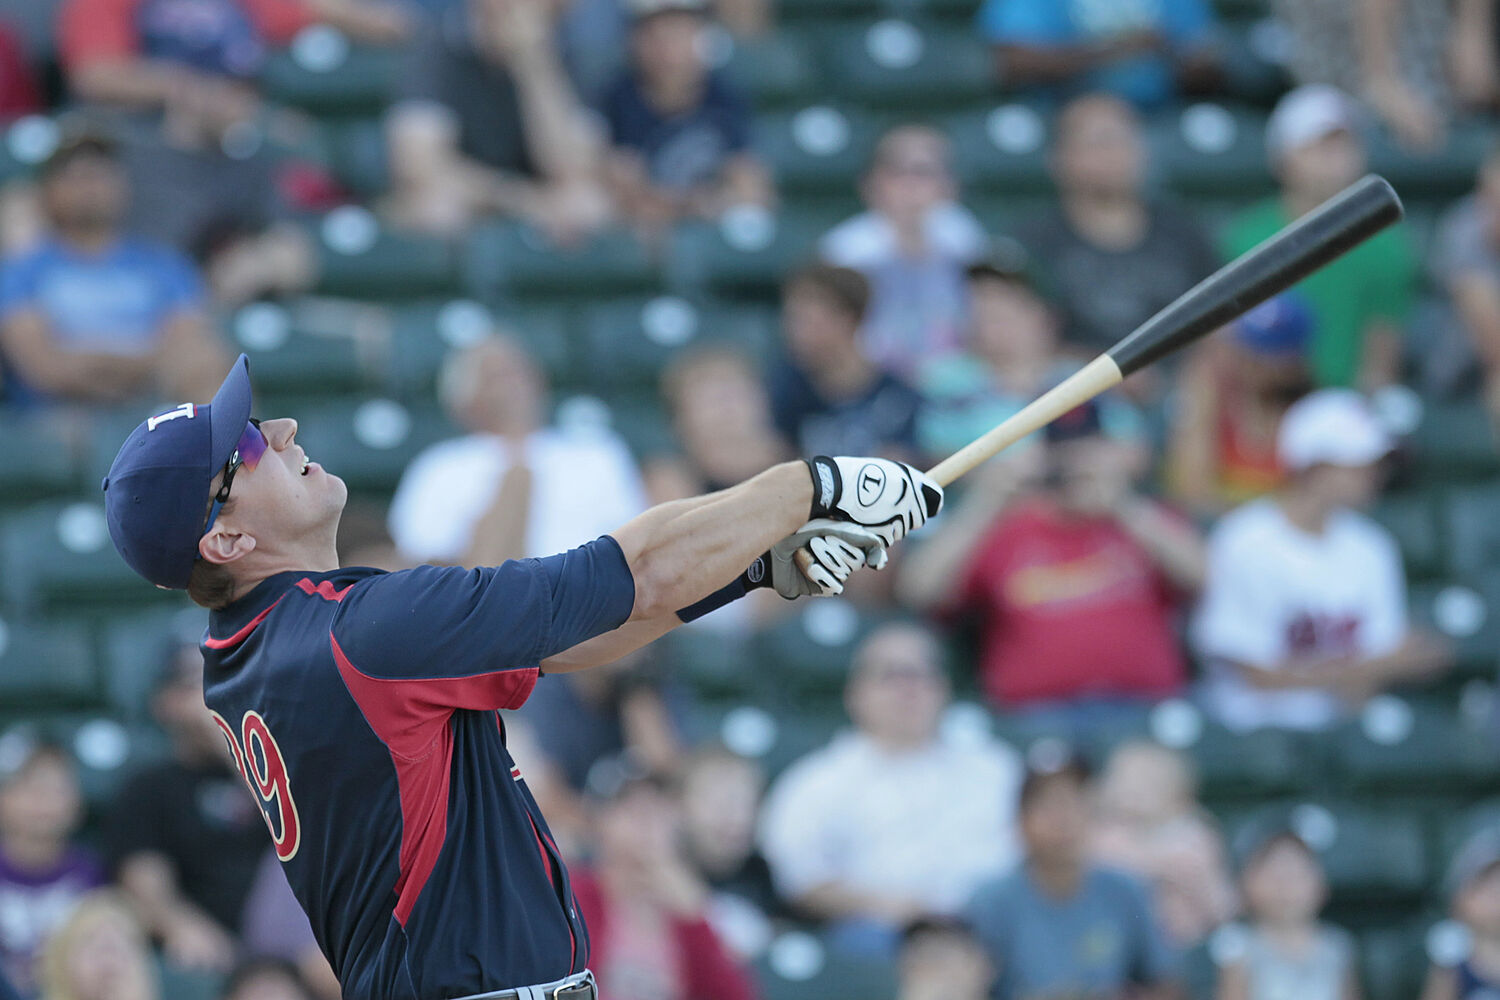 Ian Gac of the Lincoln Saltdogs bats at the All Stars Skills Competition. (John Woods / Winnipeg Free Press)